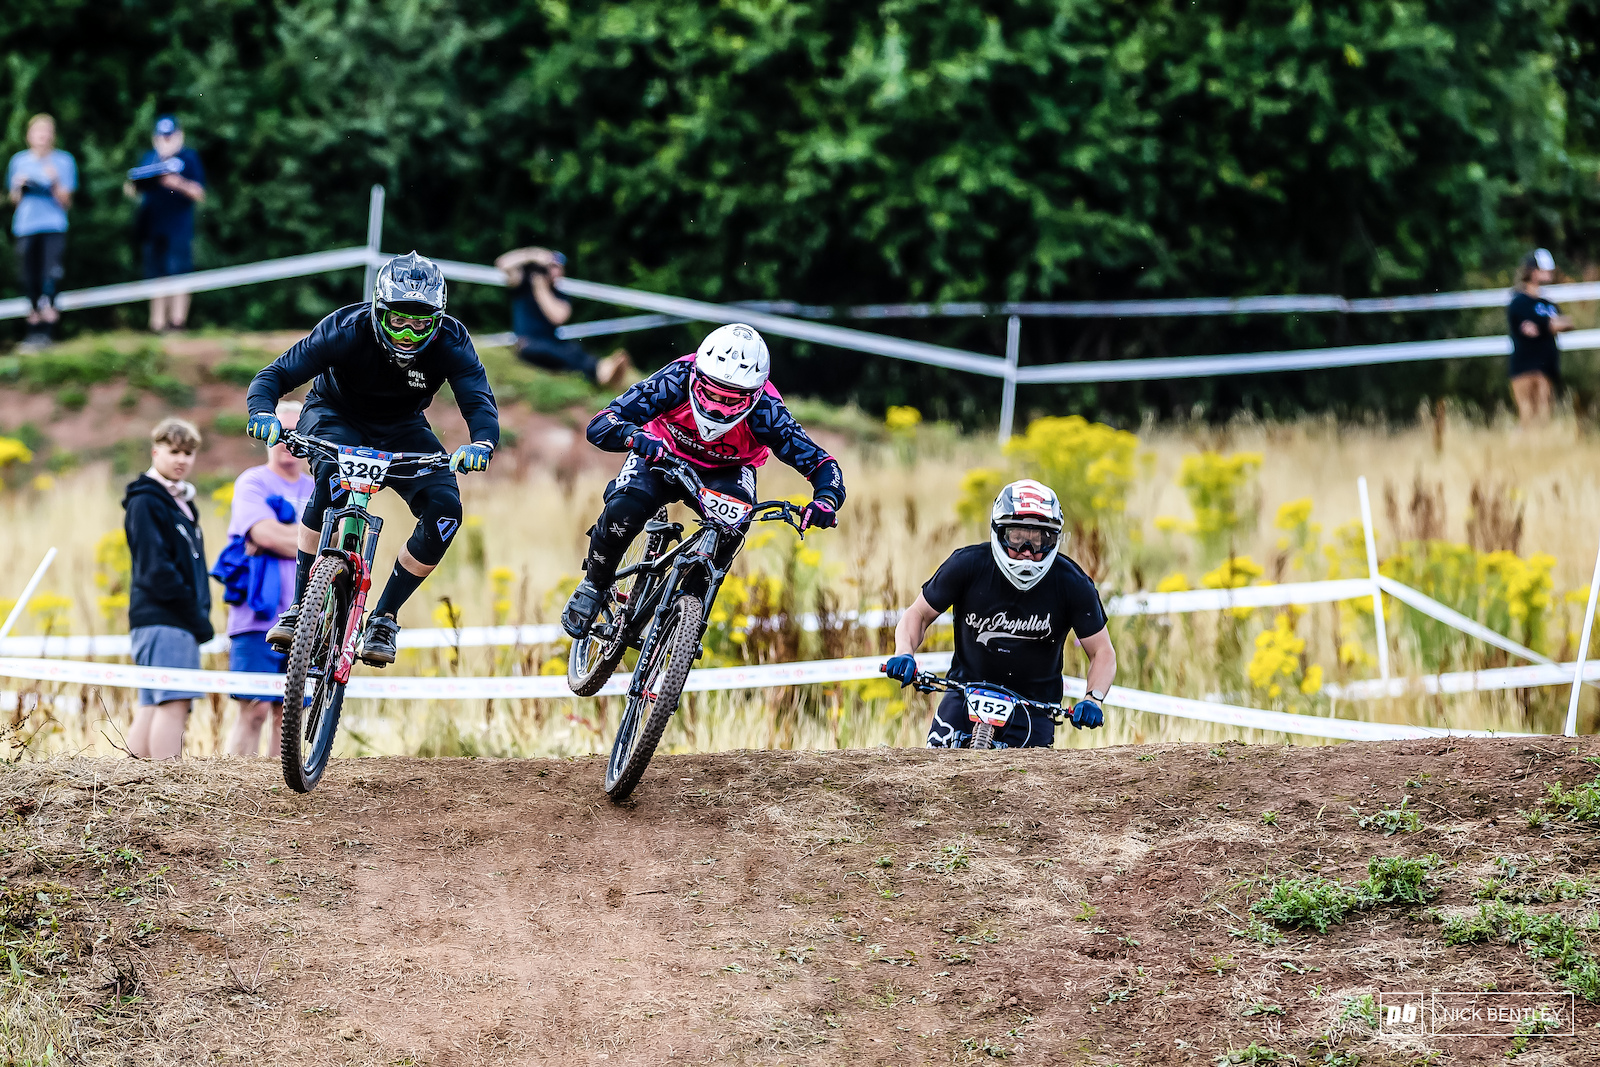 In one of the races of the day the comeback kid Scott Robets 9 years since his last 4X race on a enduro bike pushed Martin brown all the way to the final corner along with Simon Cheung But Martin Brown held on to take the Men s Masters British champion title.